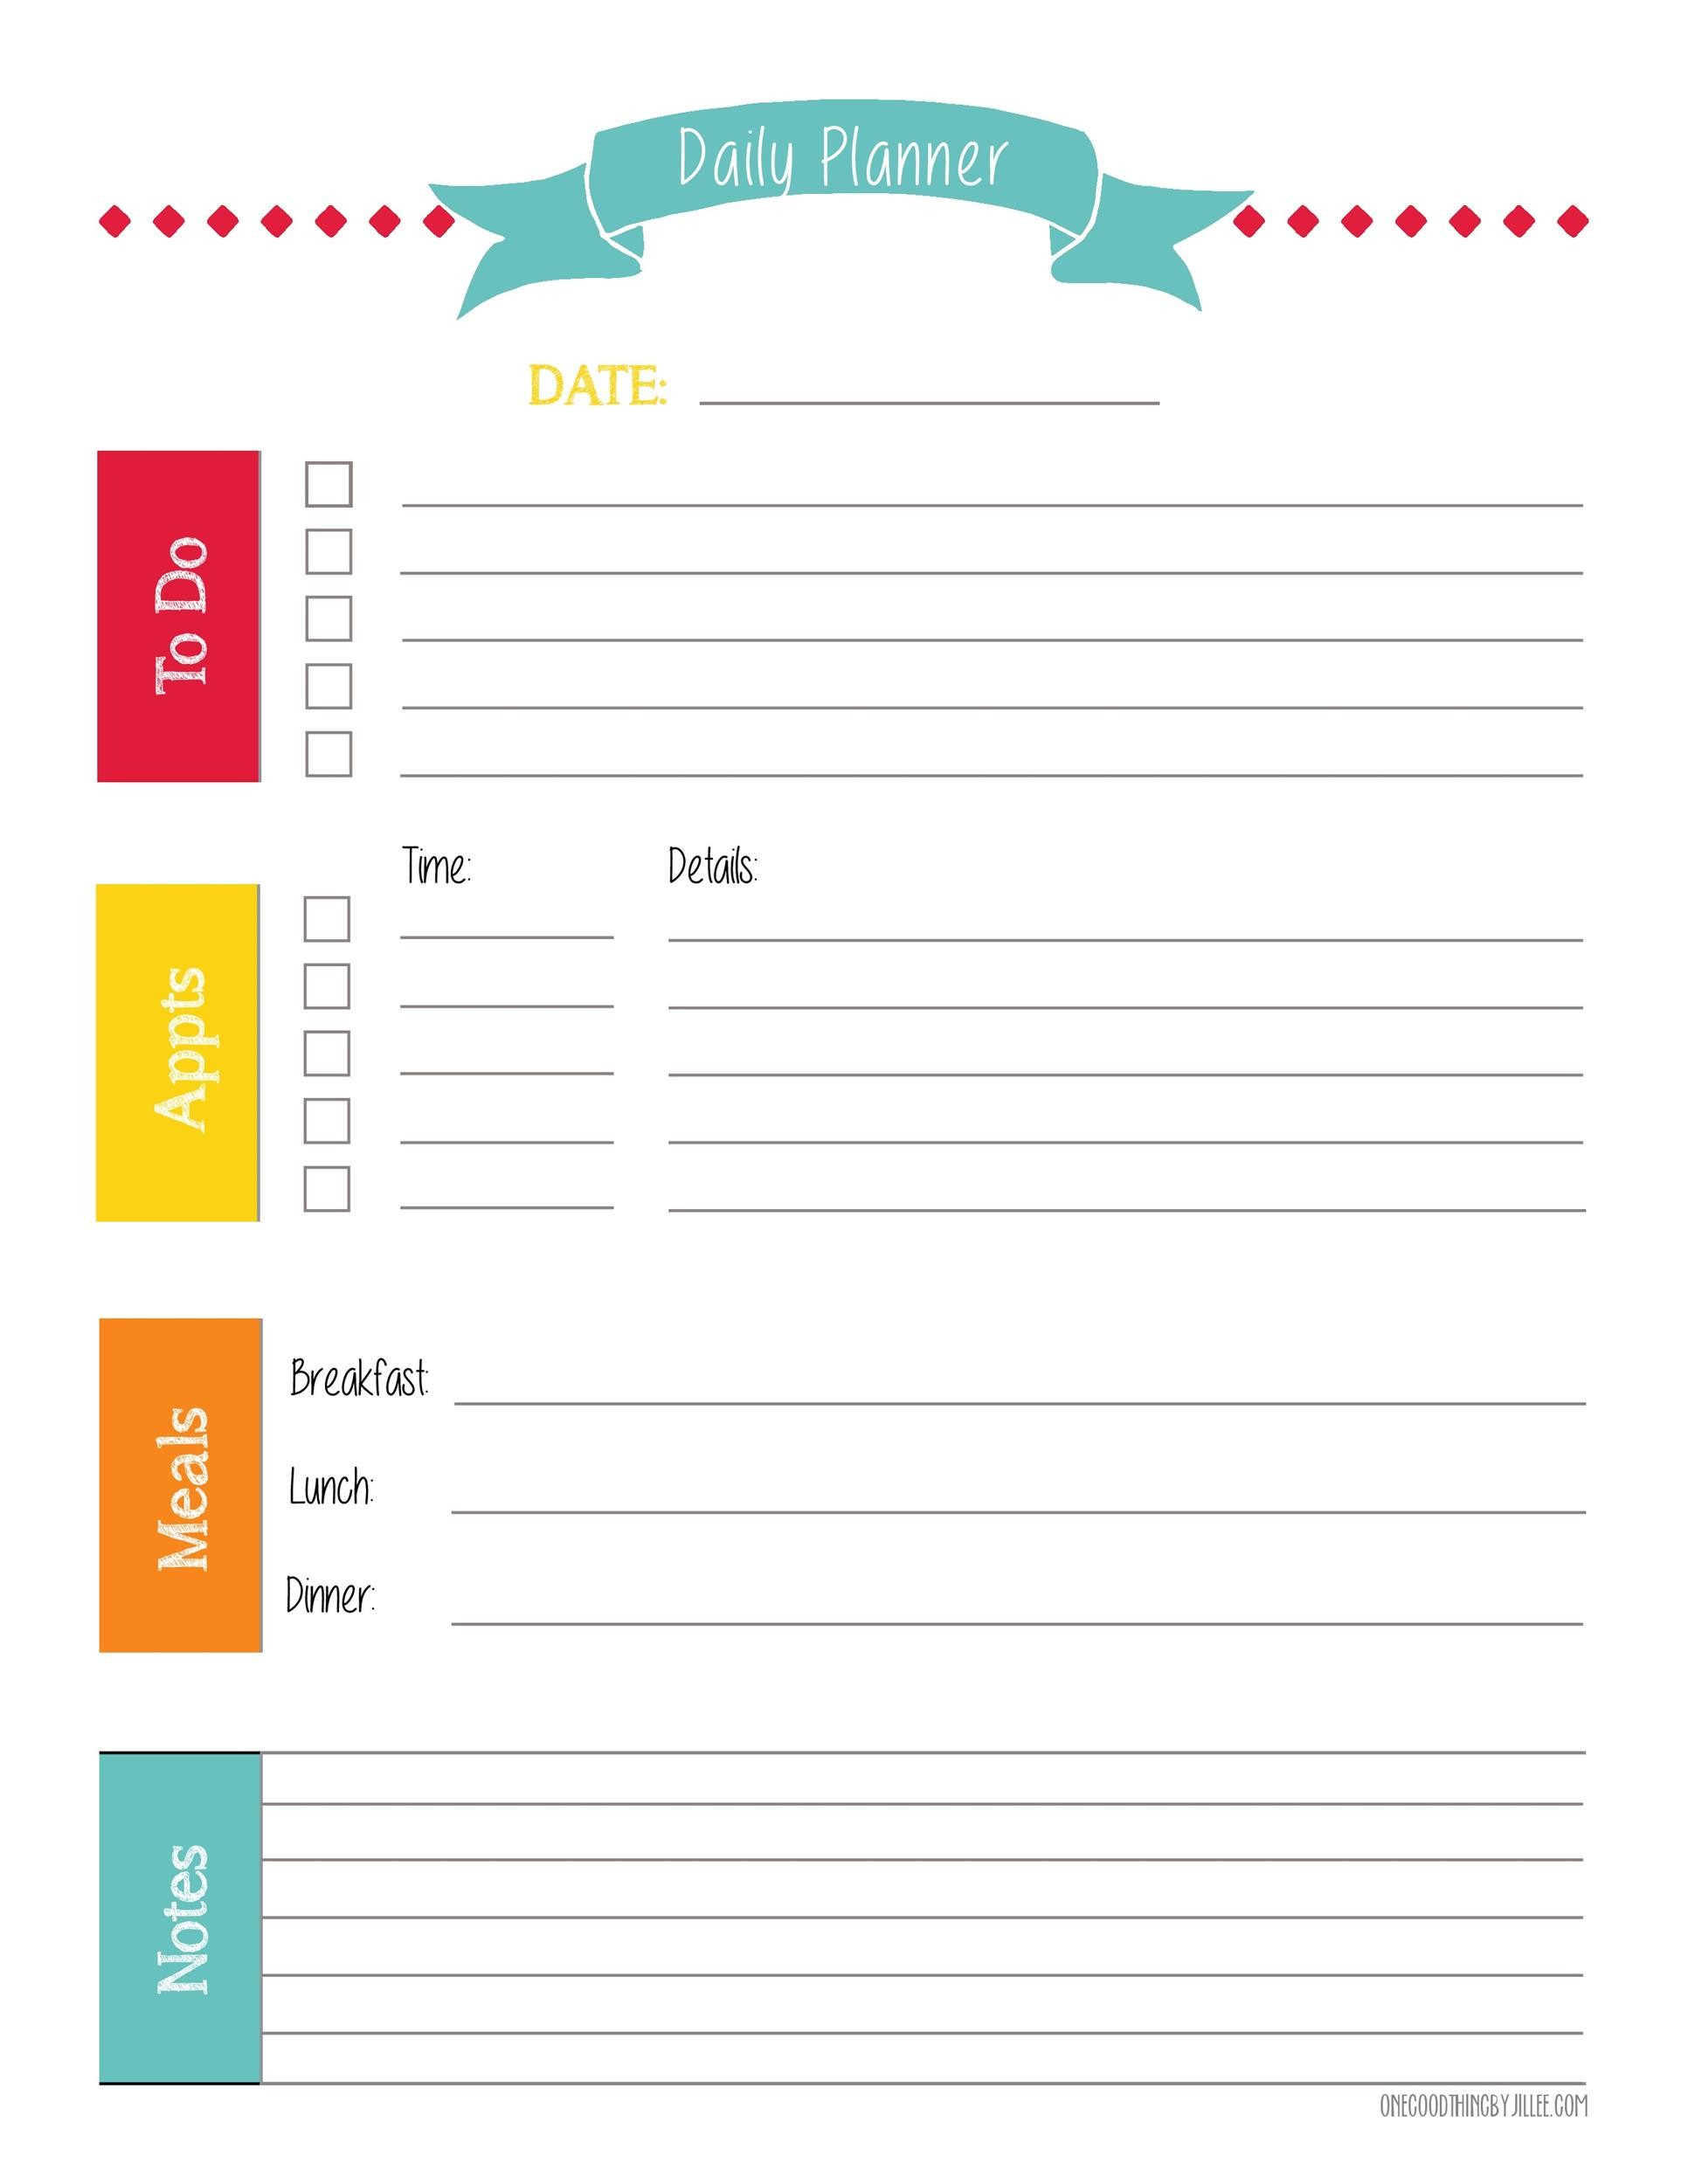 image about Daily Planner Printable known as 40+ Printable Day by day Planner Templates (No cost) ᐅ Template Lab